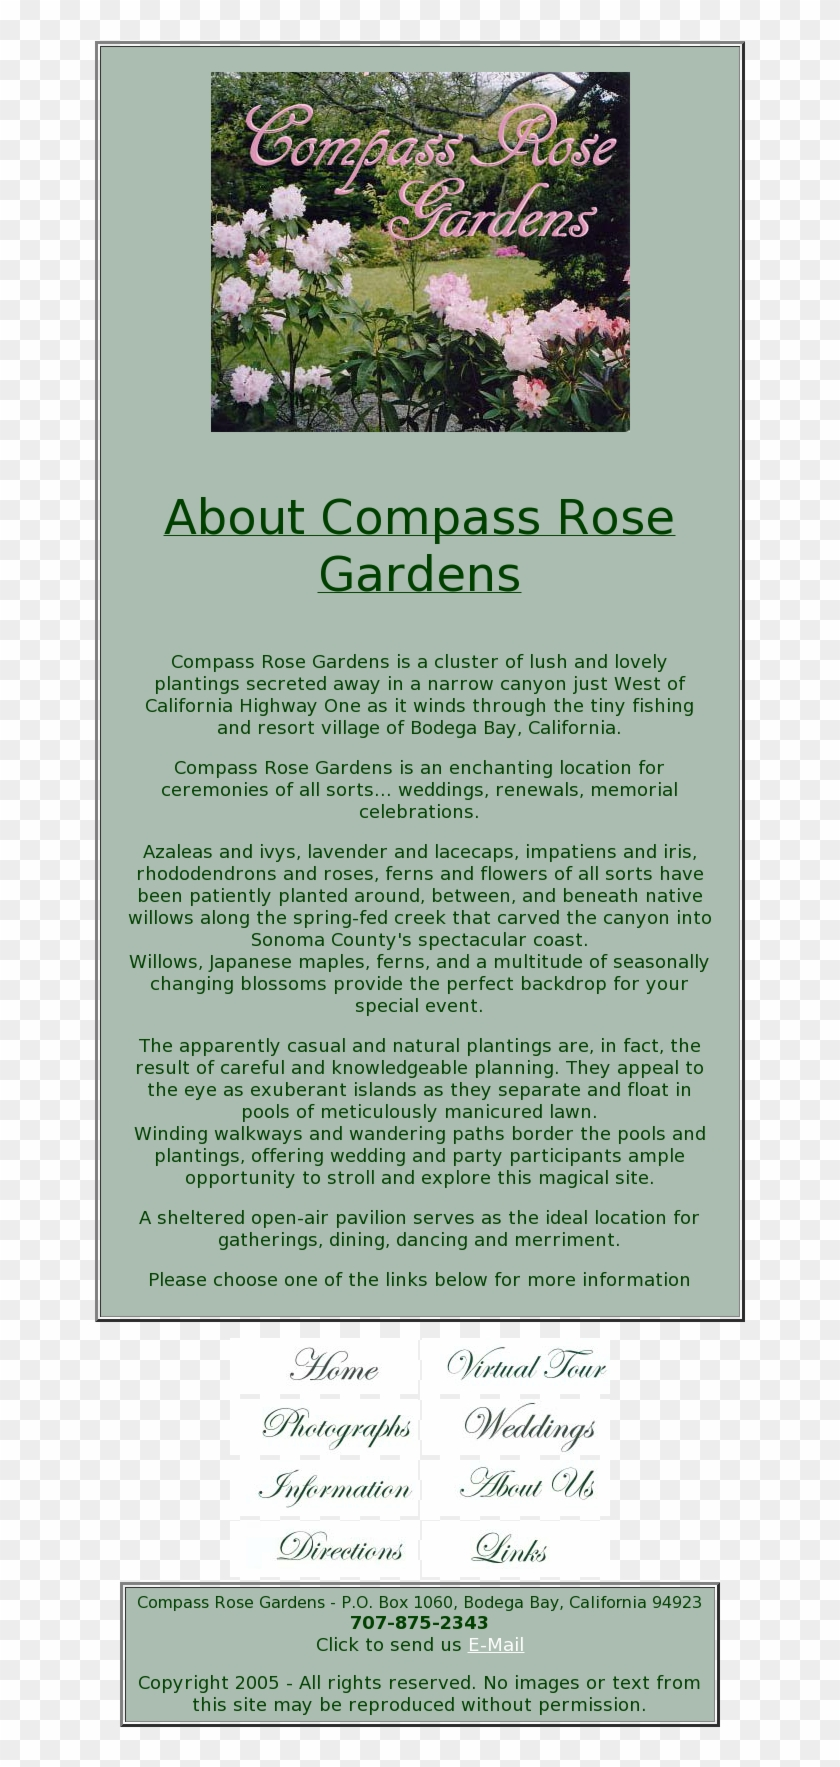 Compass Rose Gardens Competitors, Revenue And Employees - Rose Gardens, HD Png Download #296225